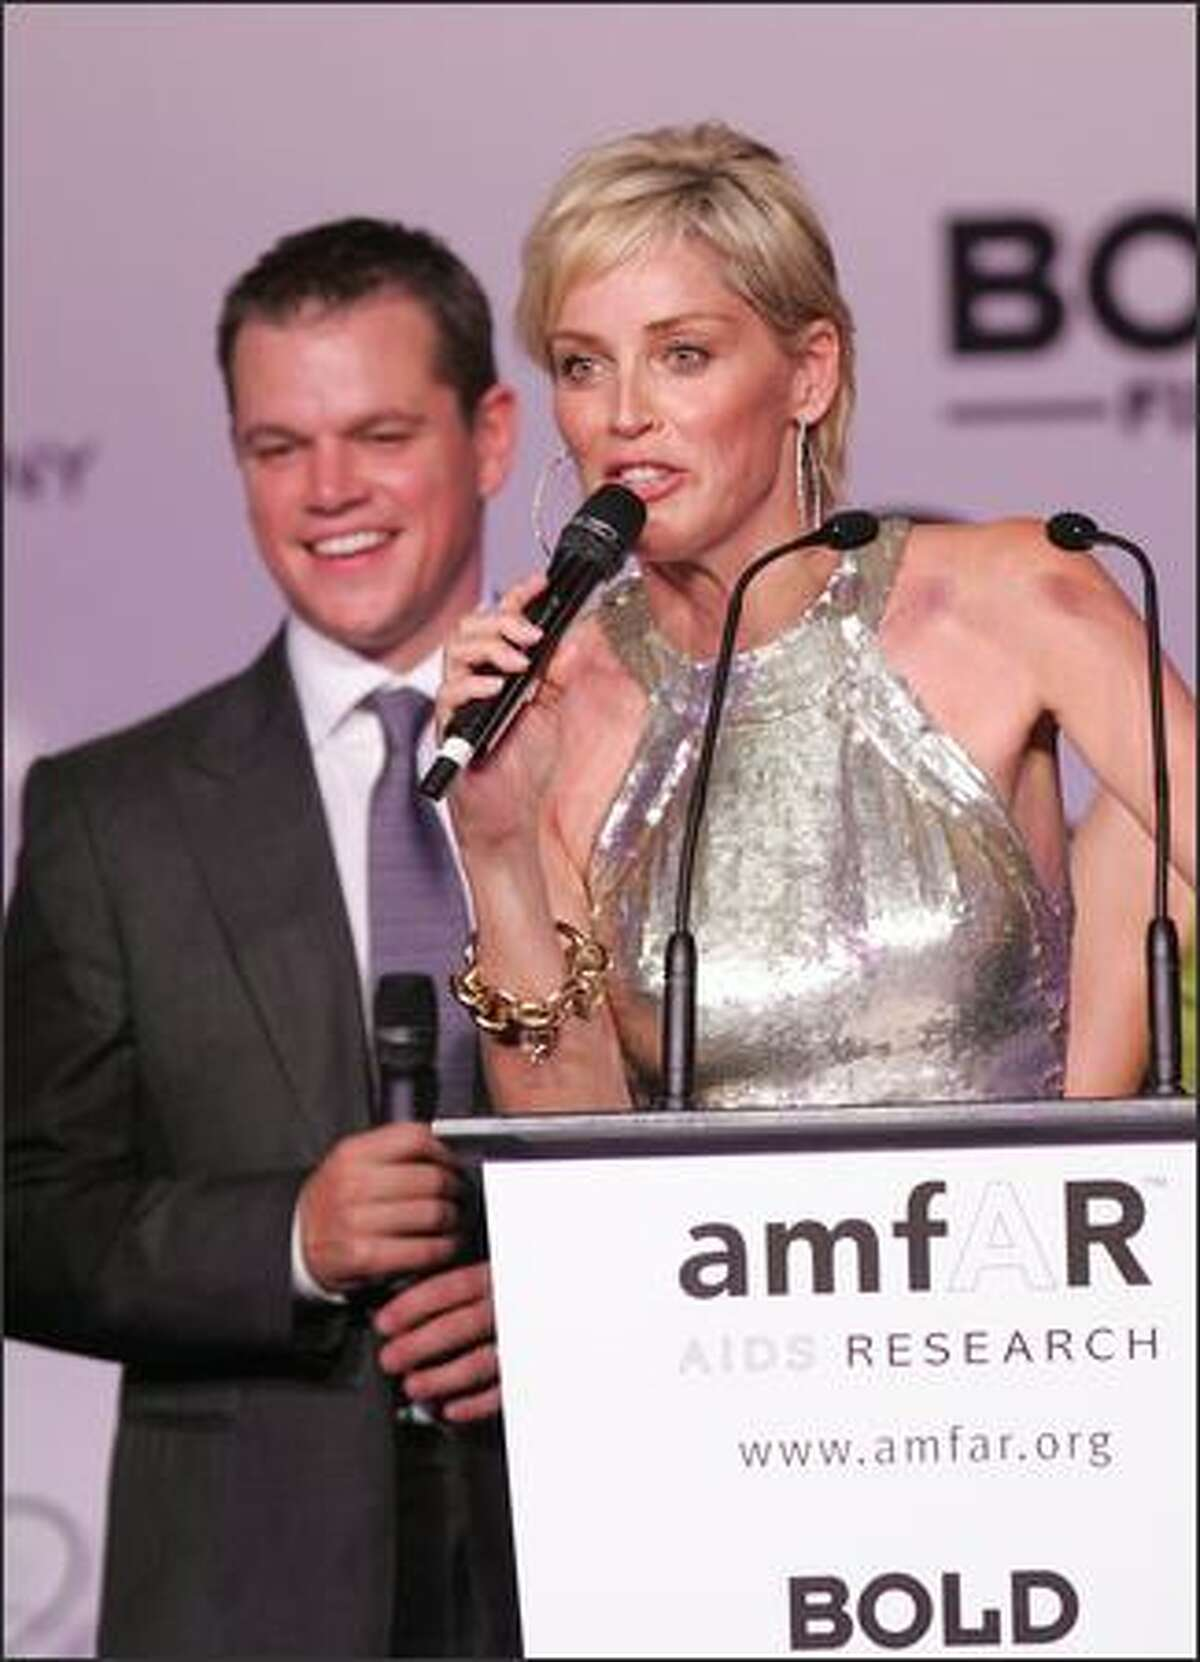 Actors Matt Damon and Sharon Stone conduct an auction at the Cinema Against Aids 2007 in aid of amfAR at Le Moulin de Mougins in Mougings on Wednesday in Cannes, France. The amfAR foundation raises funds for research, education and treatment of AIDS / HIV worldwide. (Peter Kramer/Getty Images)